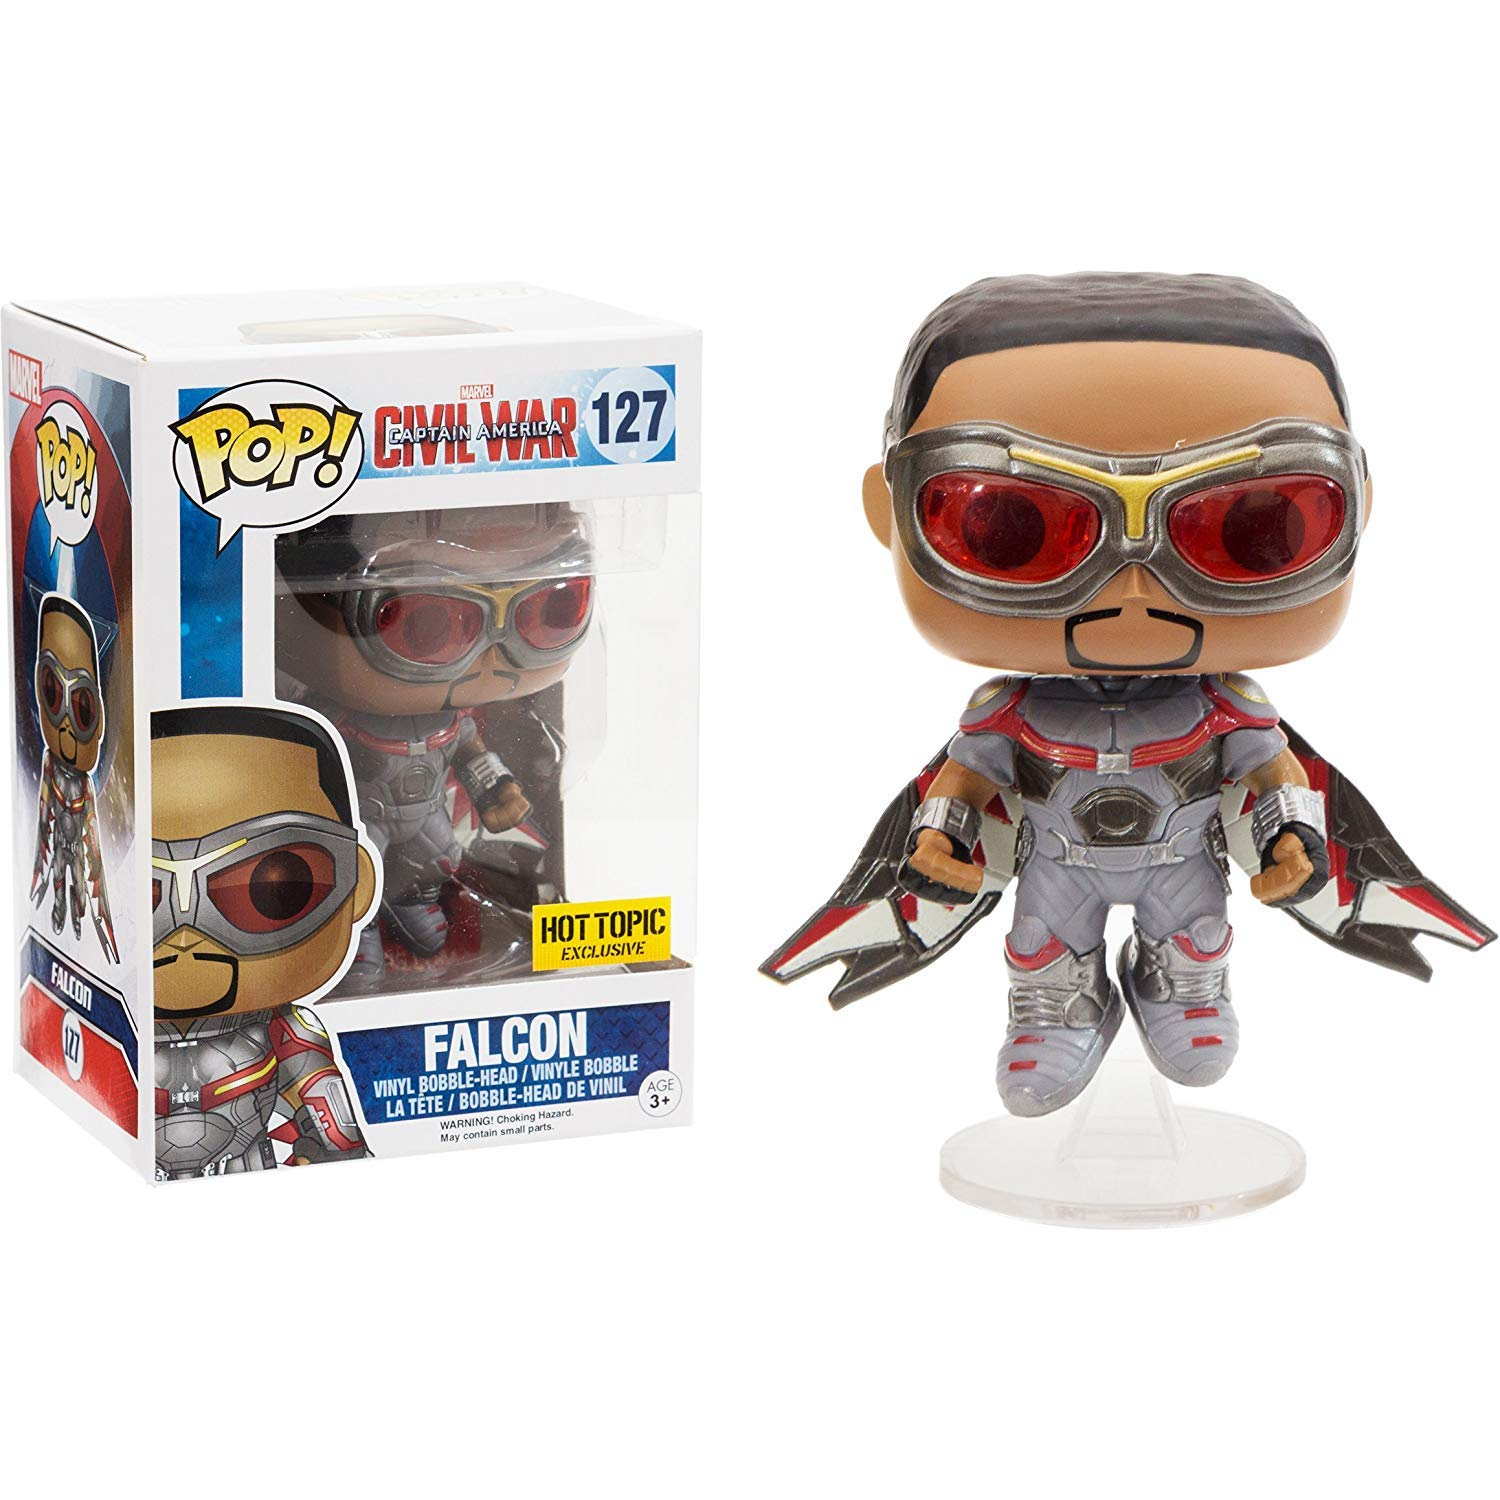 Pop! Marvel Captain America Civil War Vinyl Bobble-Head Falcon #127 Hot Topic Exclusive